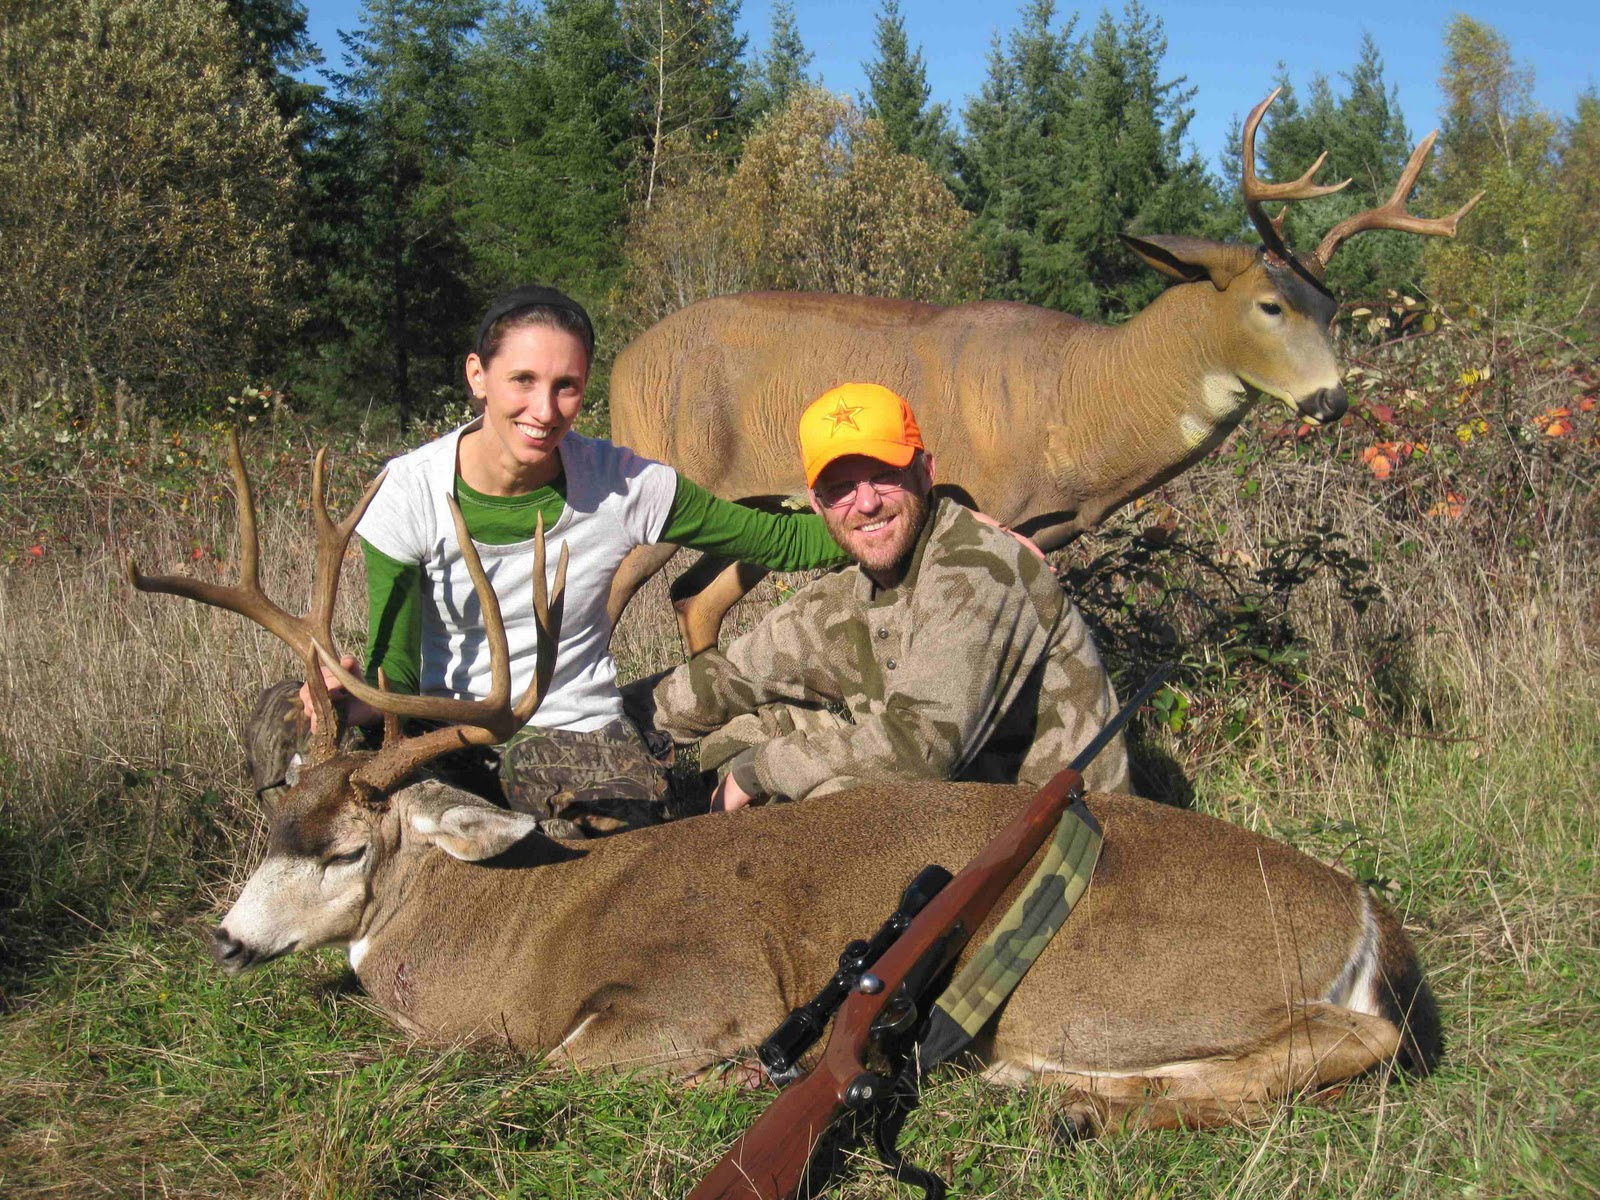 deer trail black personals Caribou trail outfitters operates from our own private hunting lodge in saskatchewan we offer hunts for whitetail deer and black bears with experienced guides.